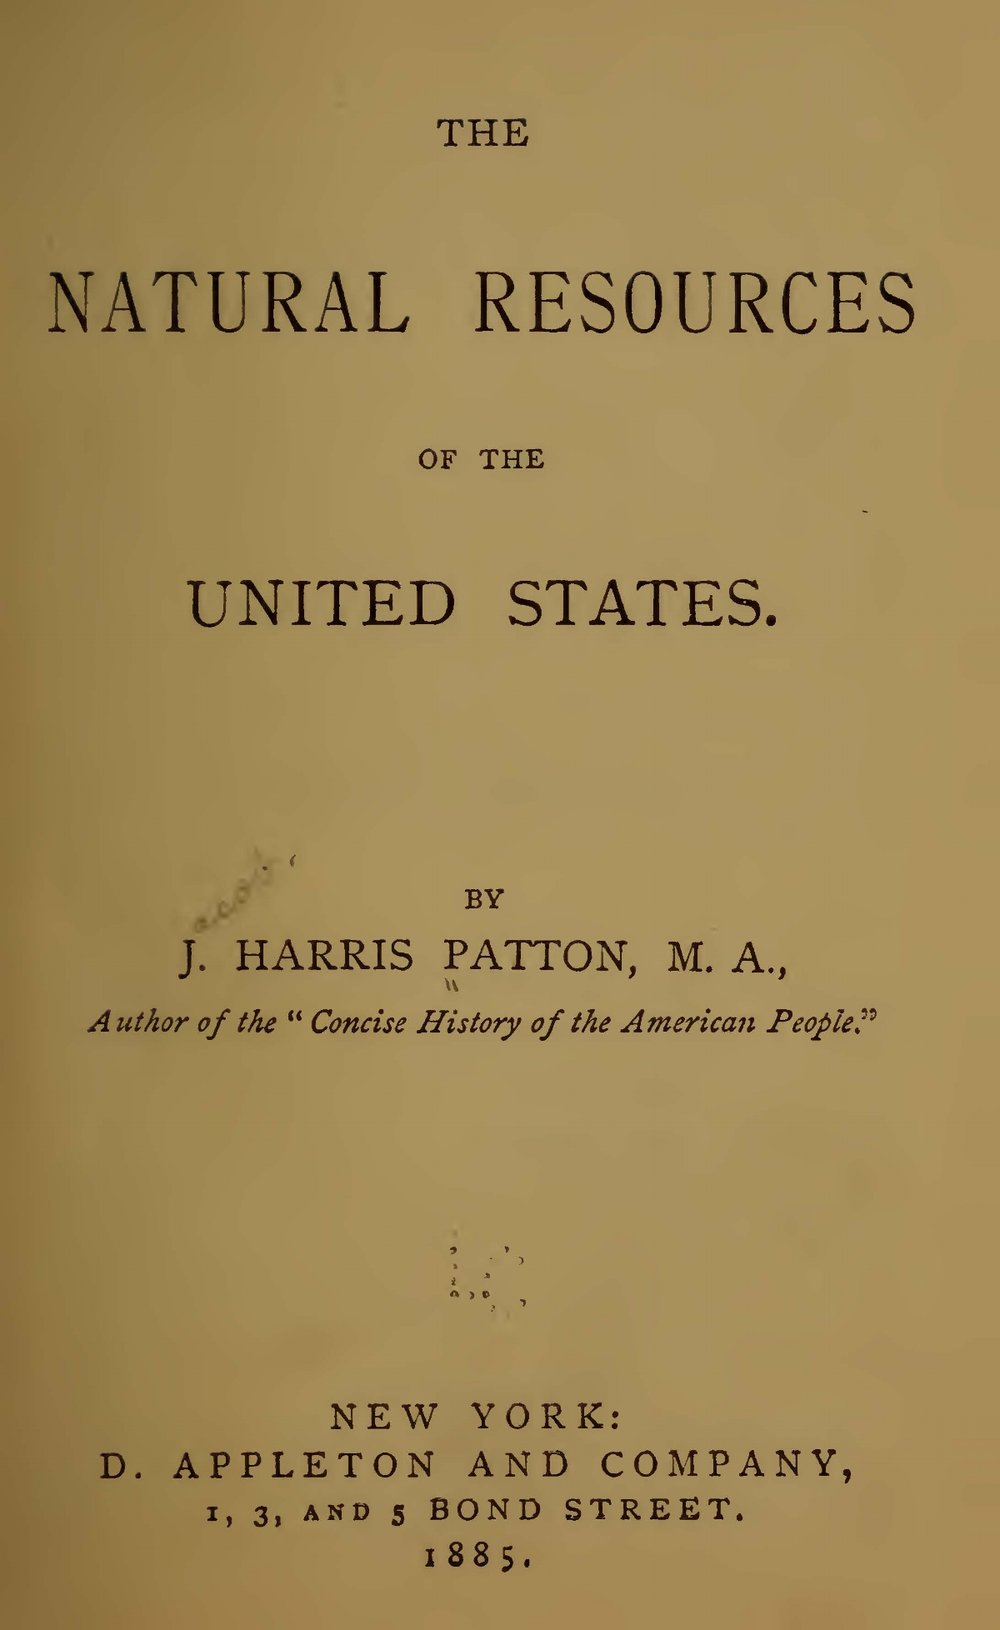 Patton, Jacob Harris, The Natural Resources of the United States Title Page.jpg